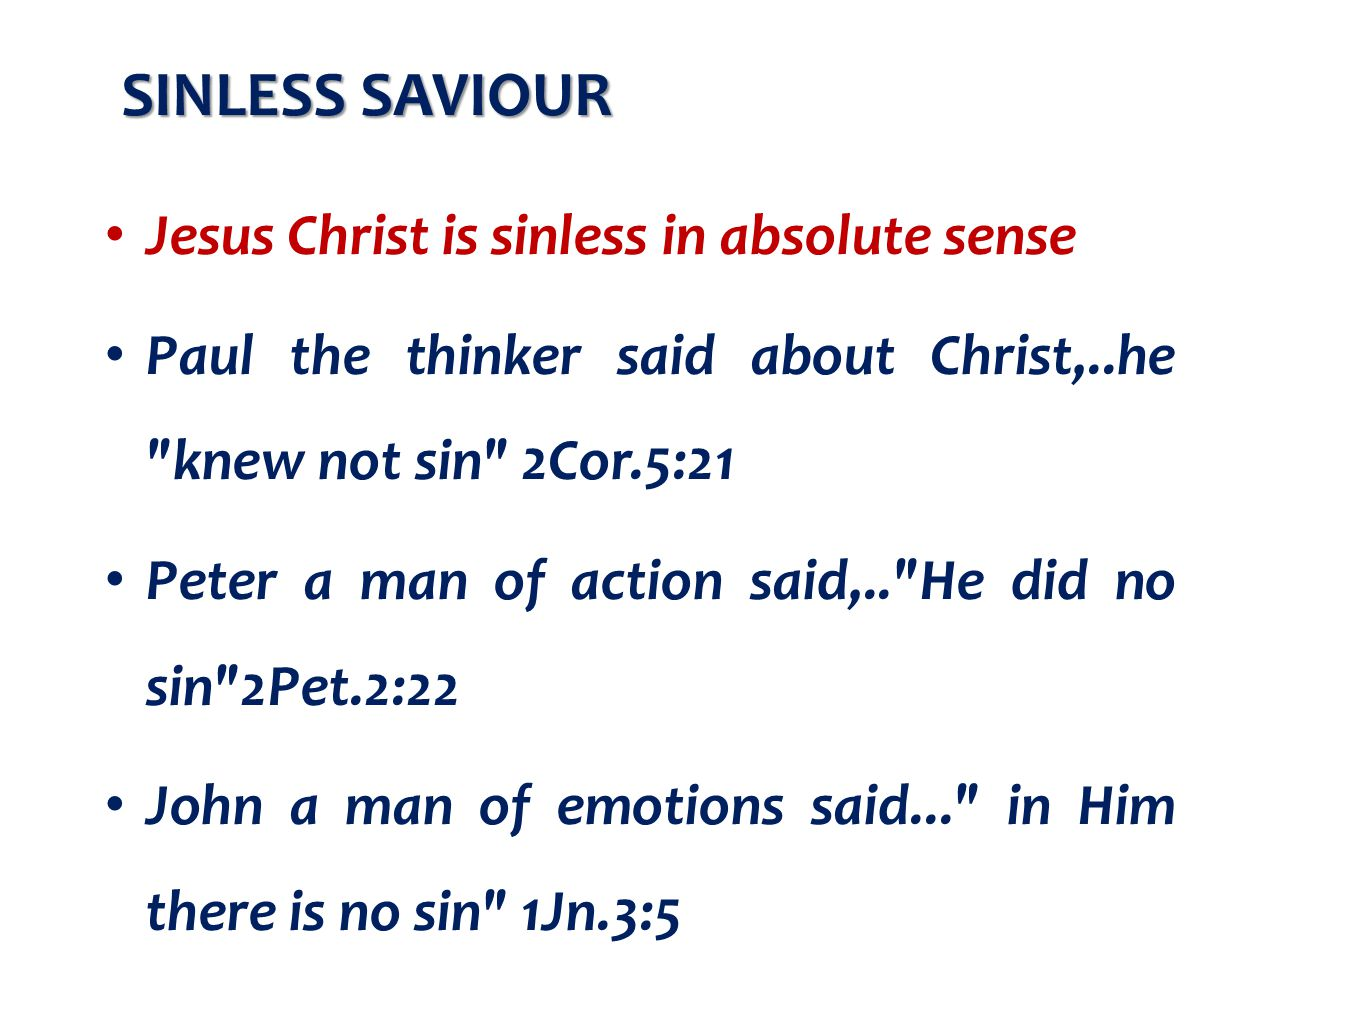 Jesus Christ is sinless in absolute sense Paul the thinker said about Christ,..he knew not sin 2Cor.5:21 Peter a man of action said,.. He did no sin 2Pet.2:22 John a man of emotions said... in Him there is no sin 1Jn.3:5 SINLESS SAVIOUR